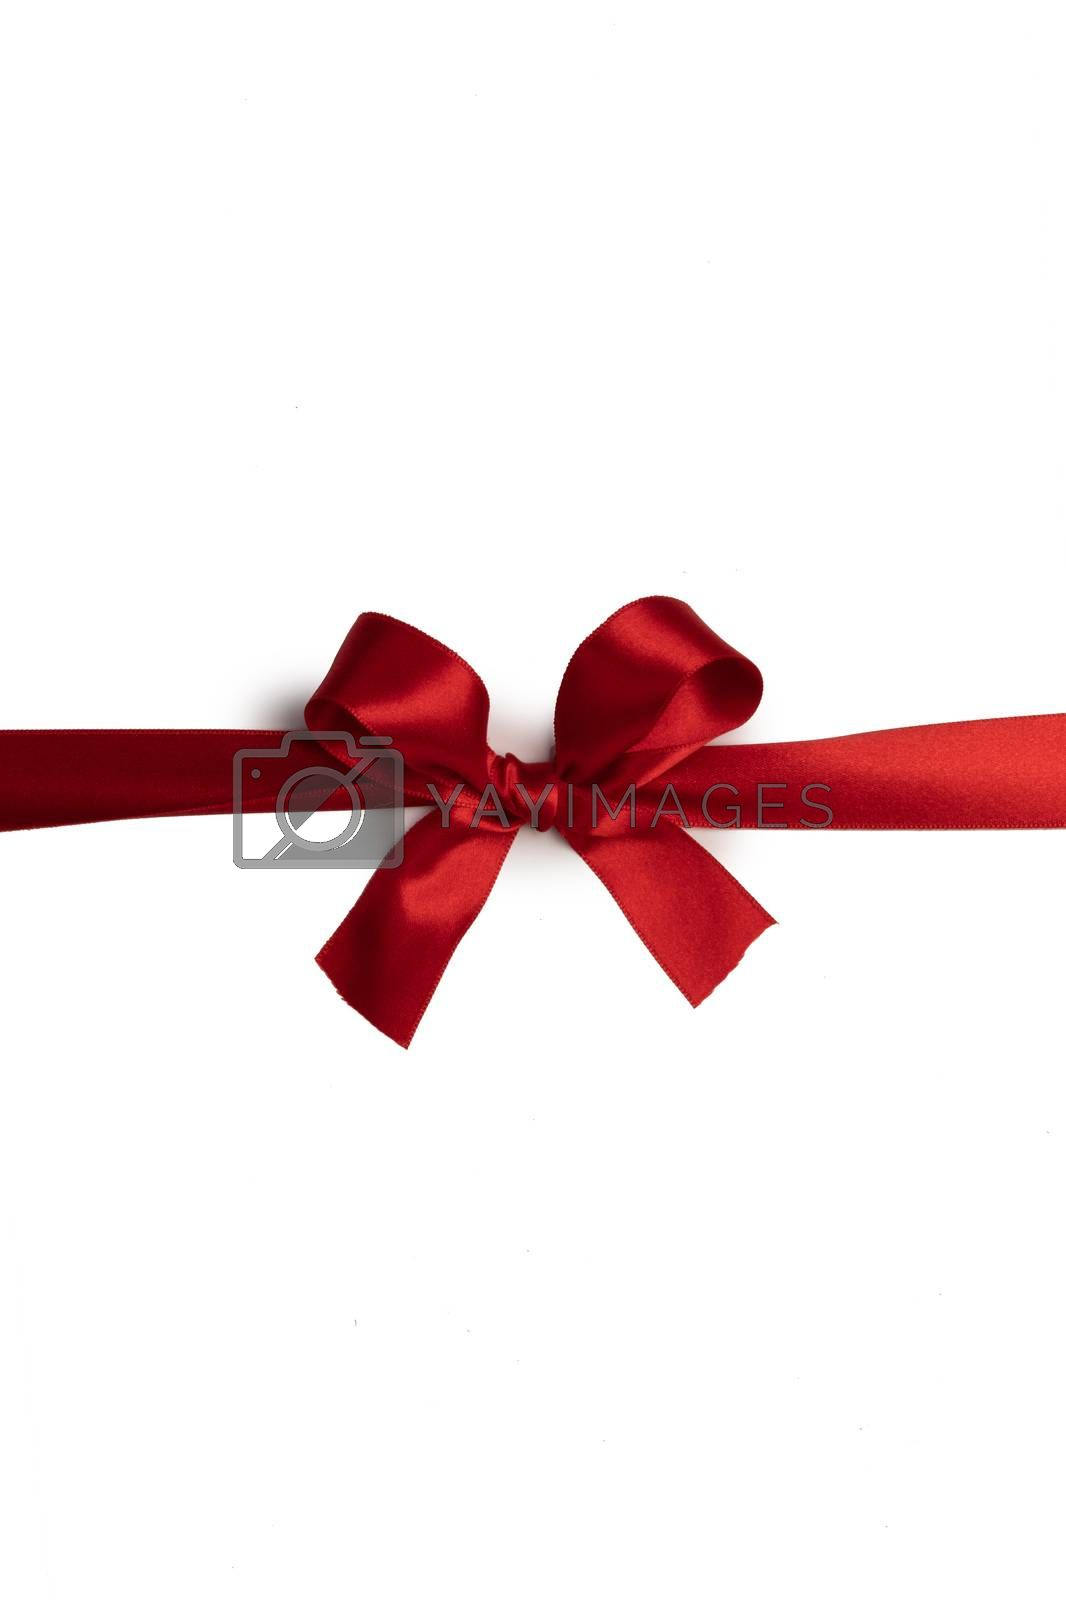 Red satin ribbon bow isolated on white background